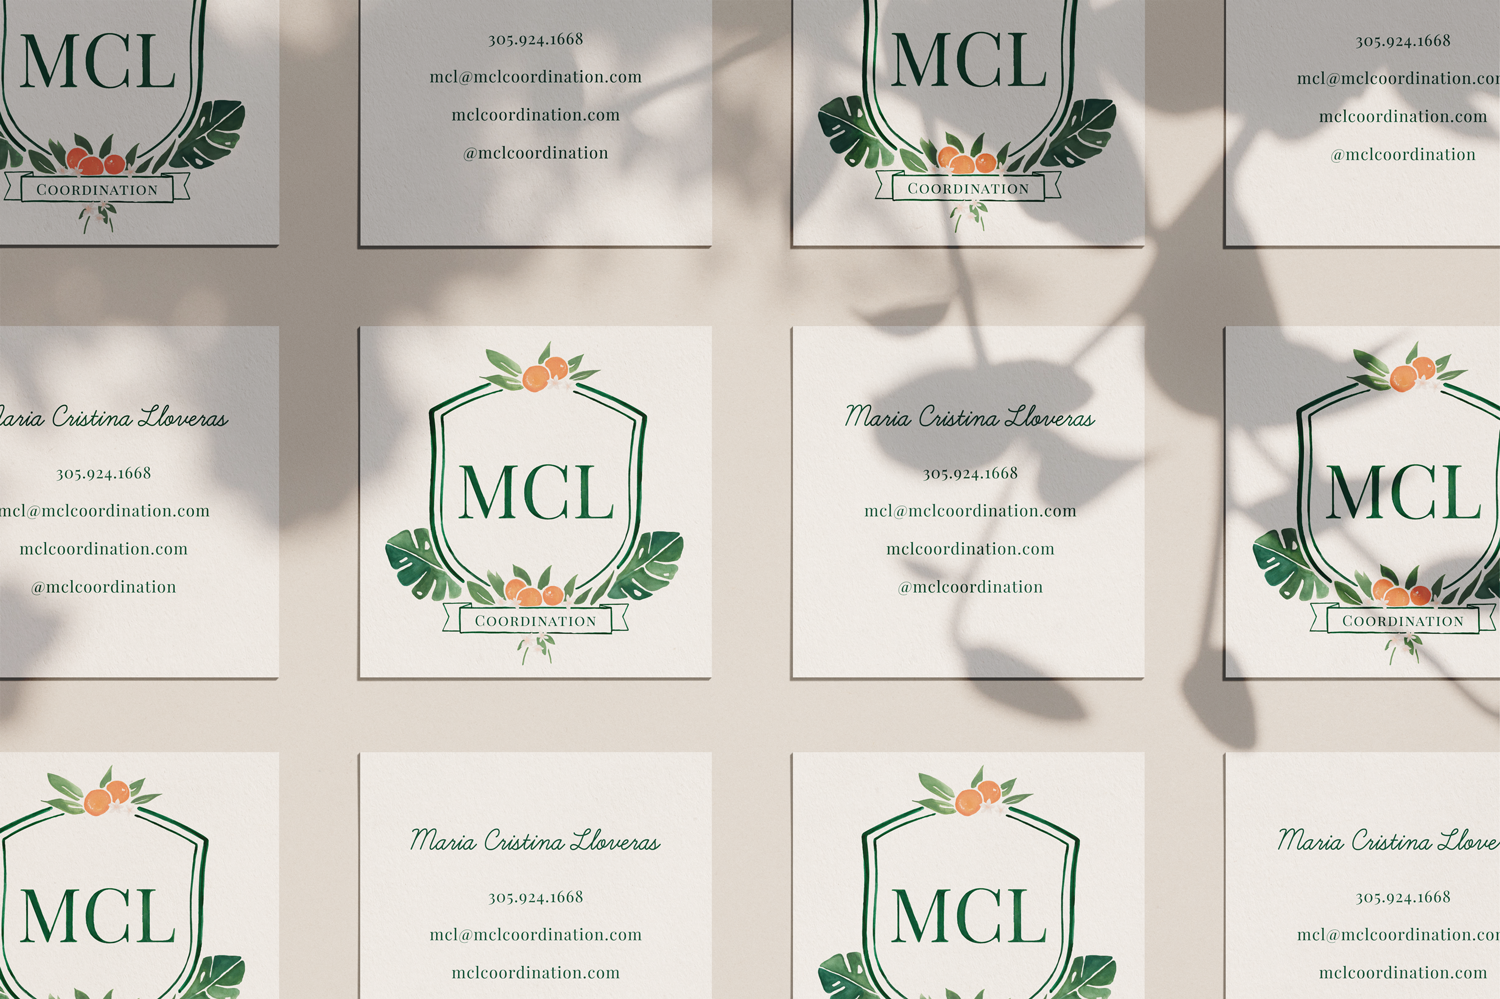 MCL Coordination